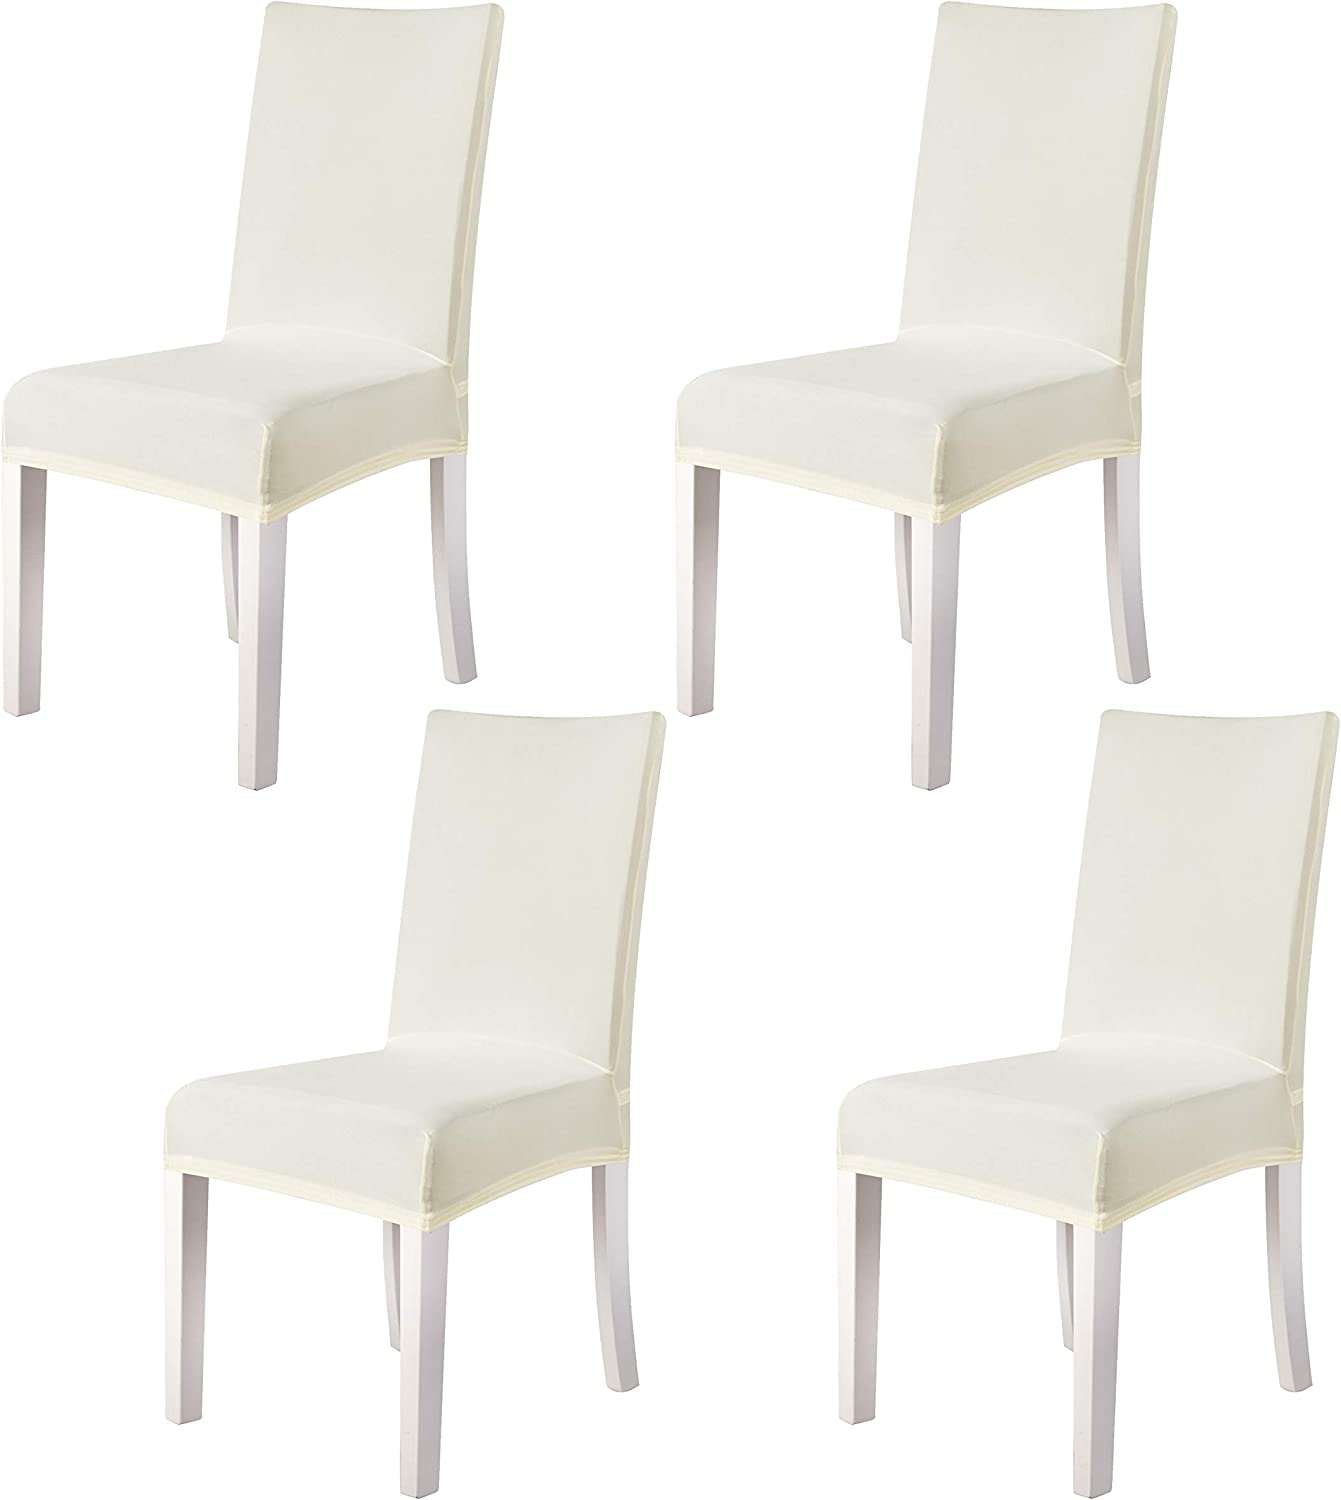 4 Pieces Spandex Stretch Washable Dining Room Chair Cover Slipcovers